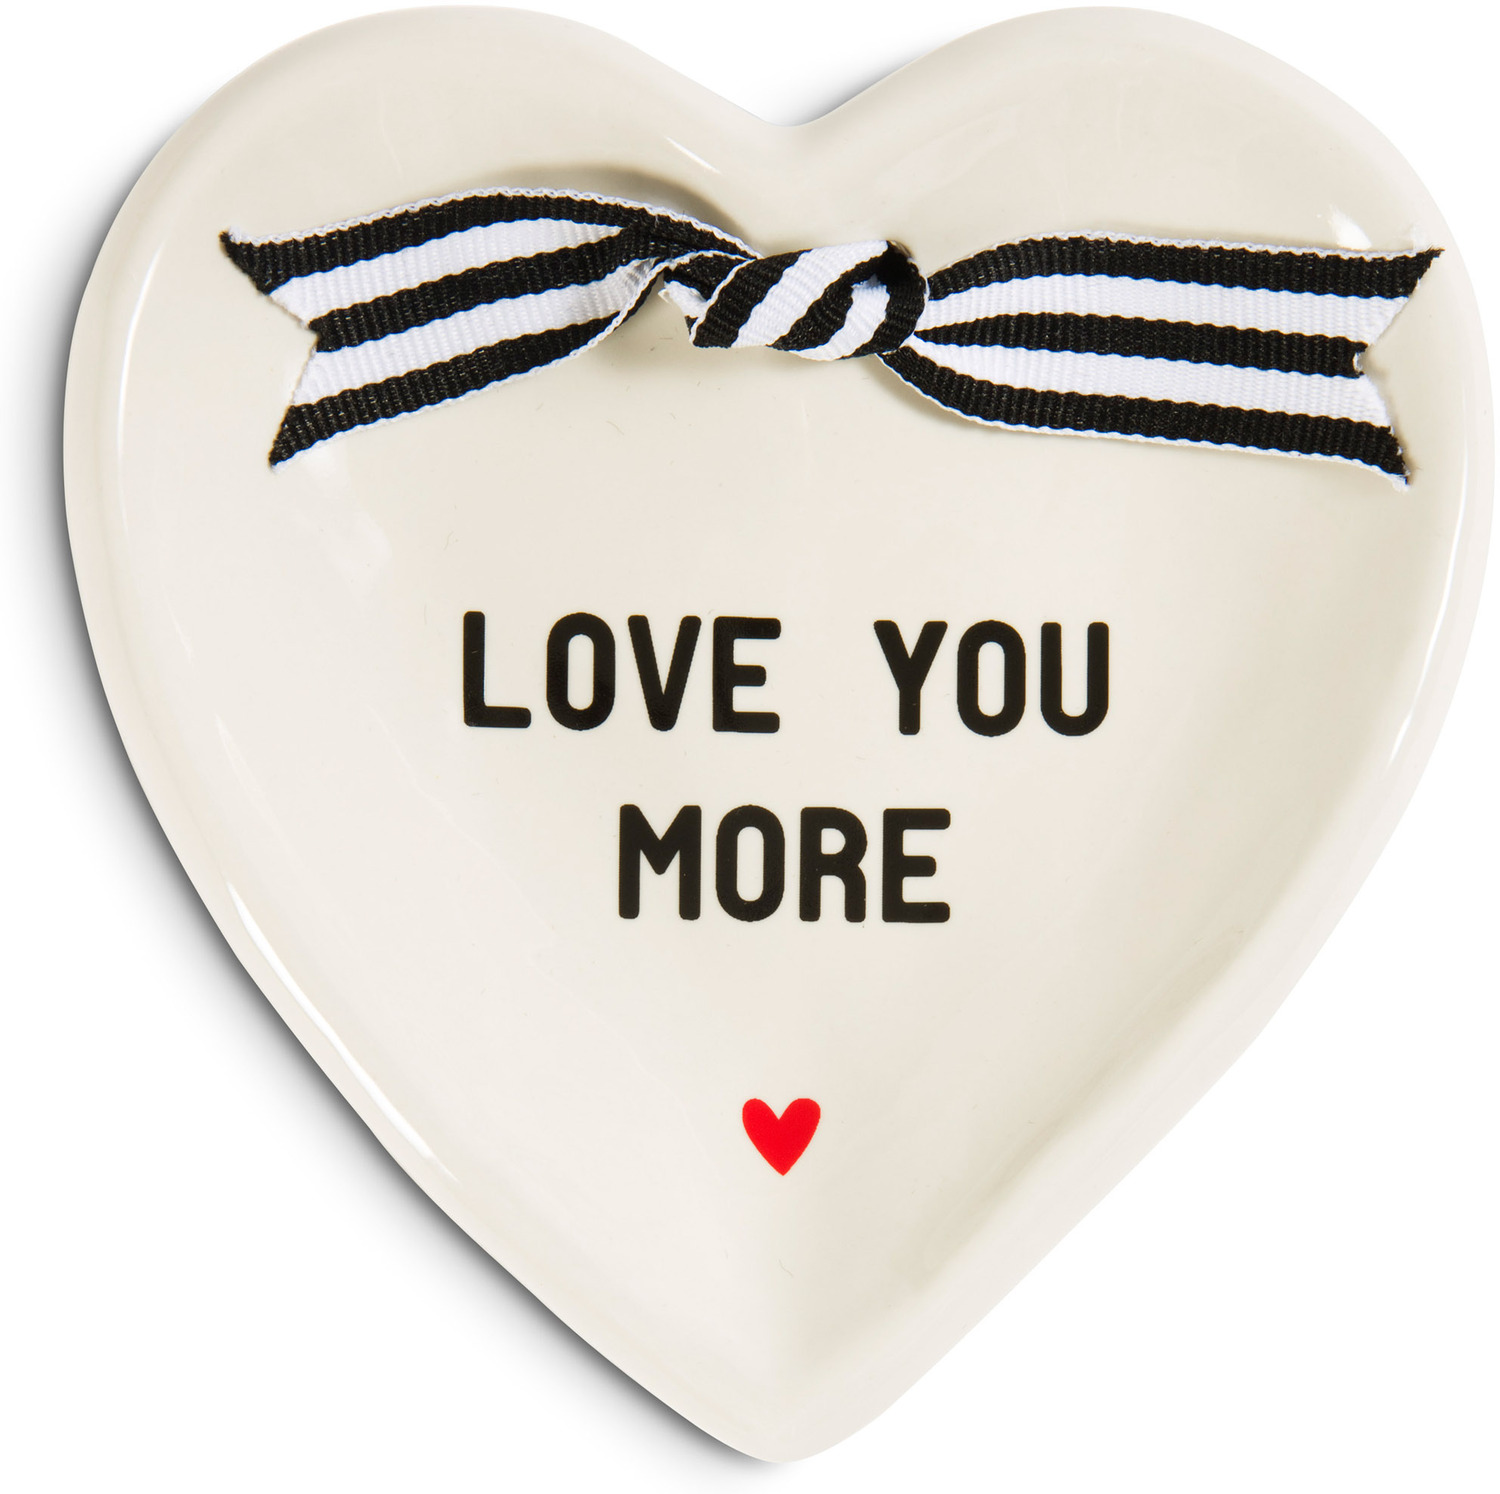 Love You More by The Milestone Collection - Small Heart-Shaped Keepsake Dish